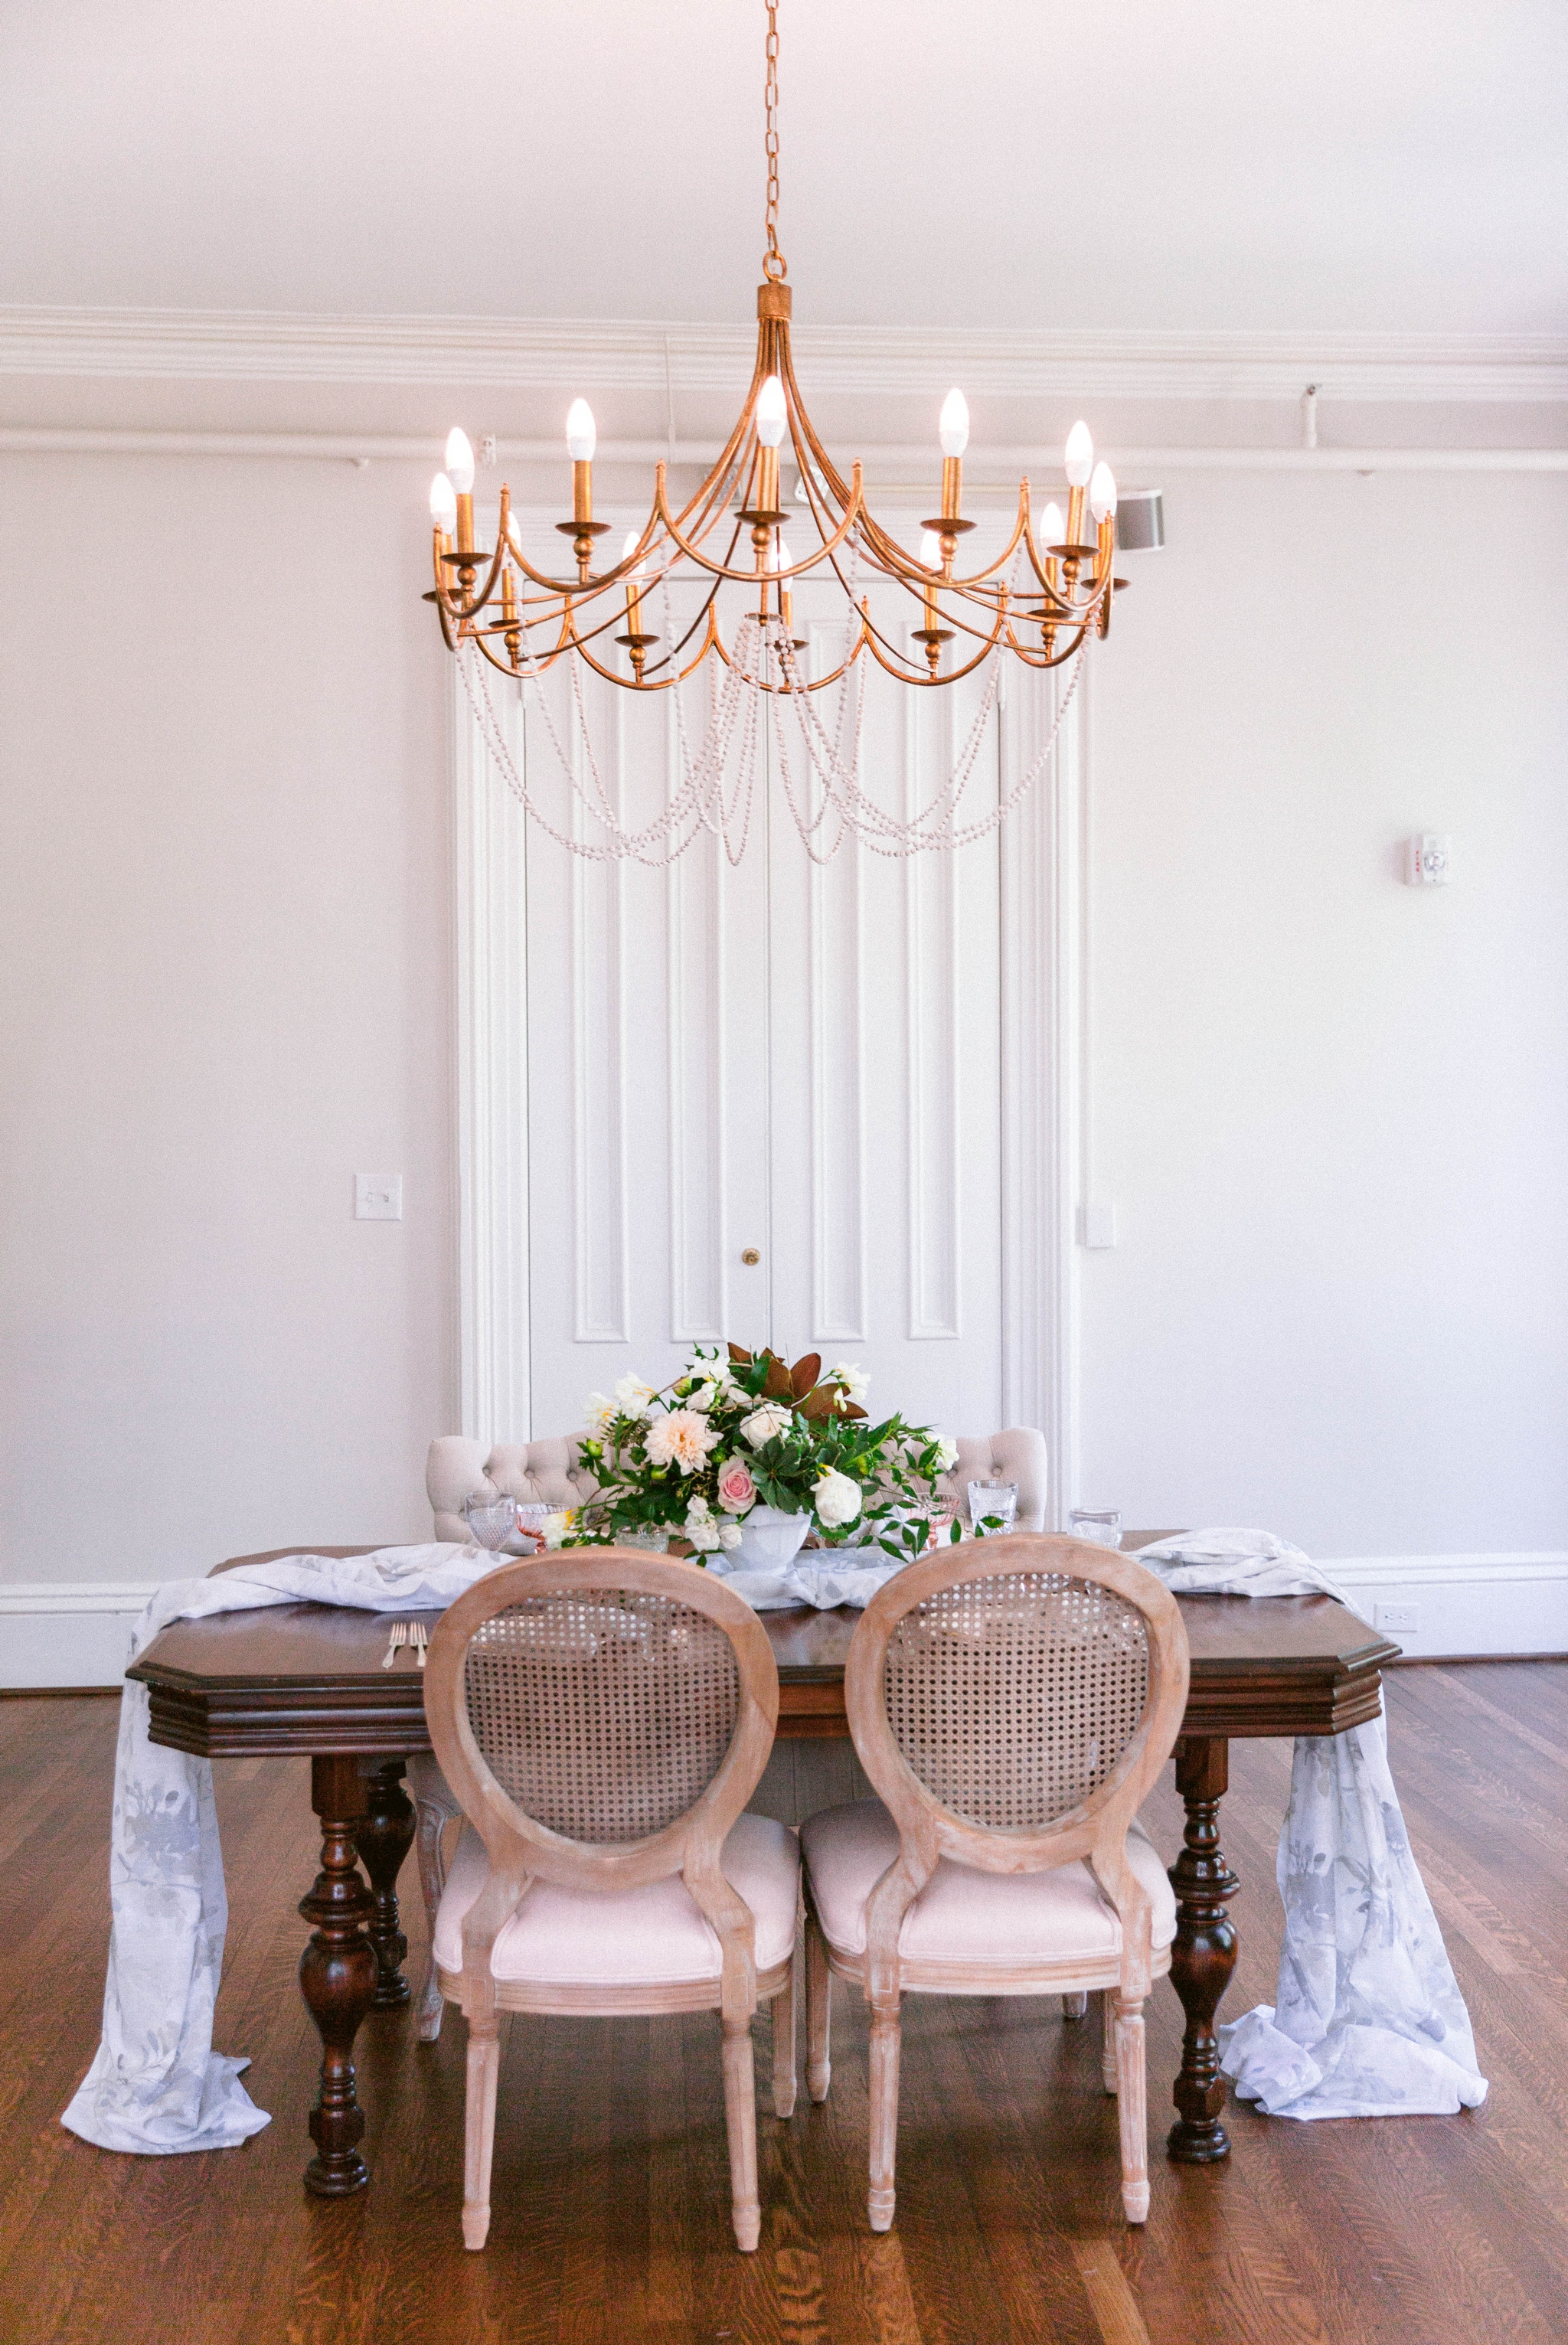 natural light dining room inspiration in an all white estate - blue and pink hues with lots of greenery - reception dinner decoration inspiration - honolulu oahu hawaii wedding photographer - johanna dye photography